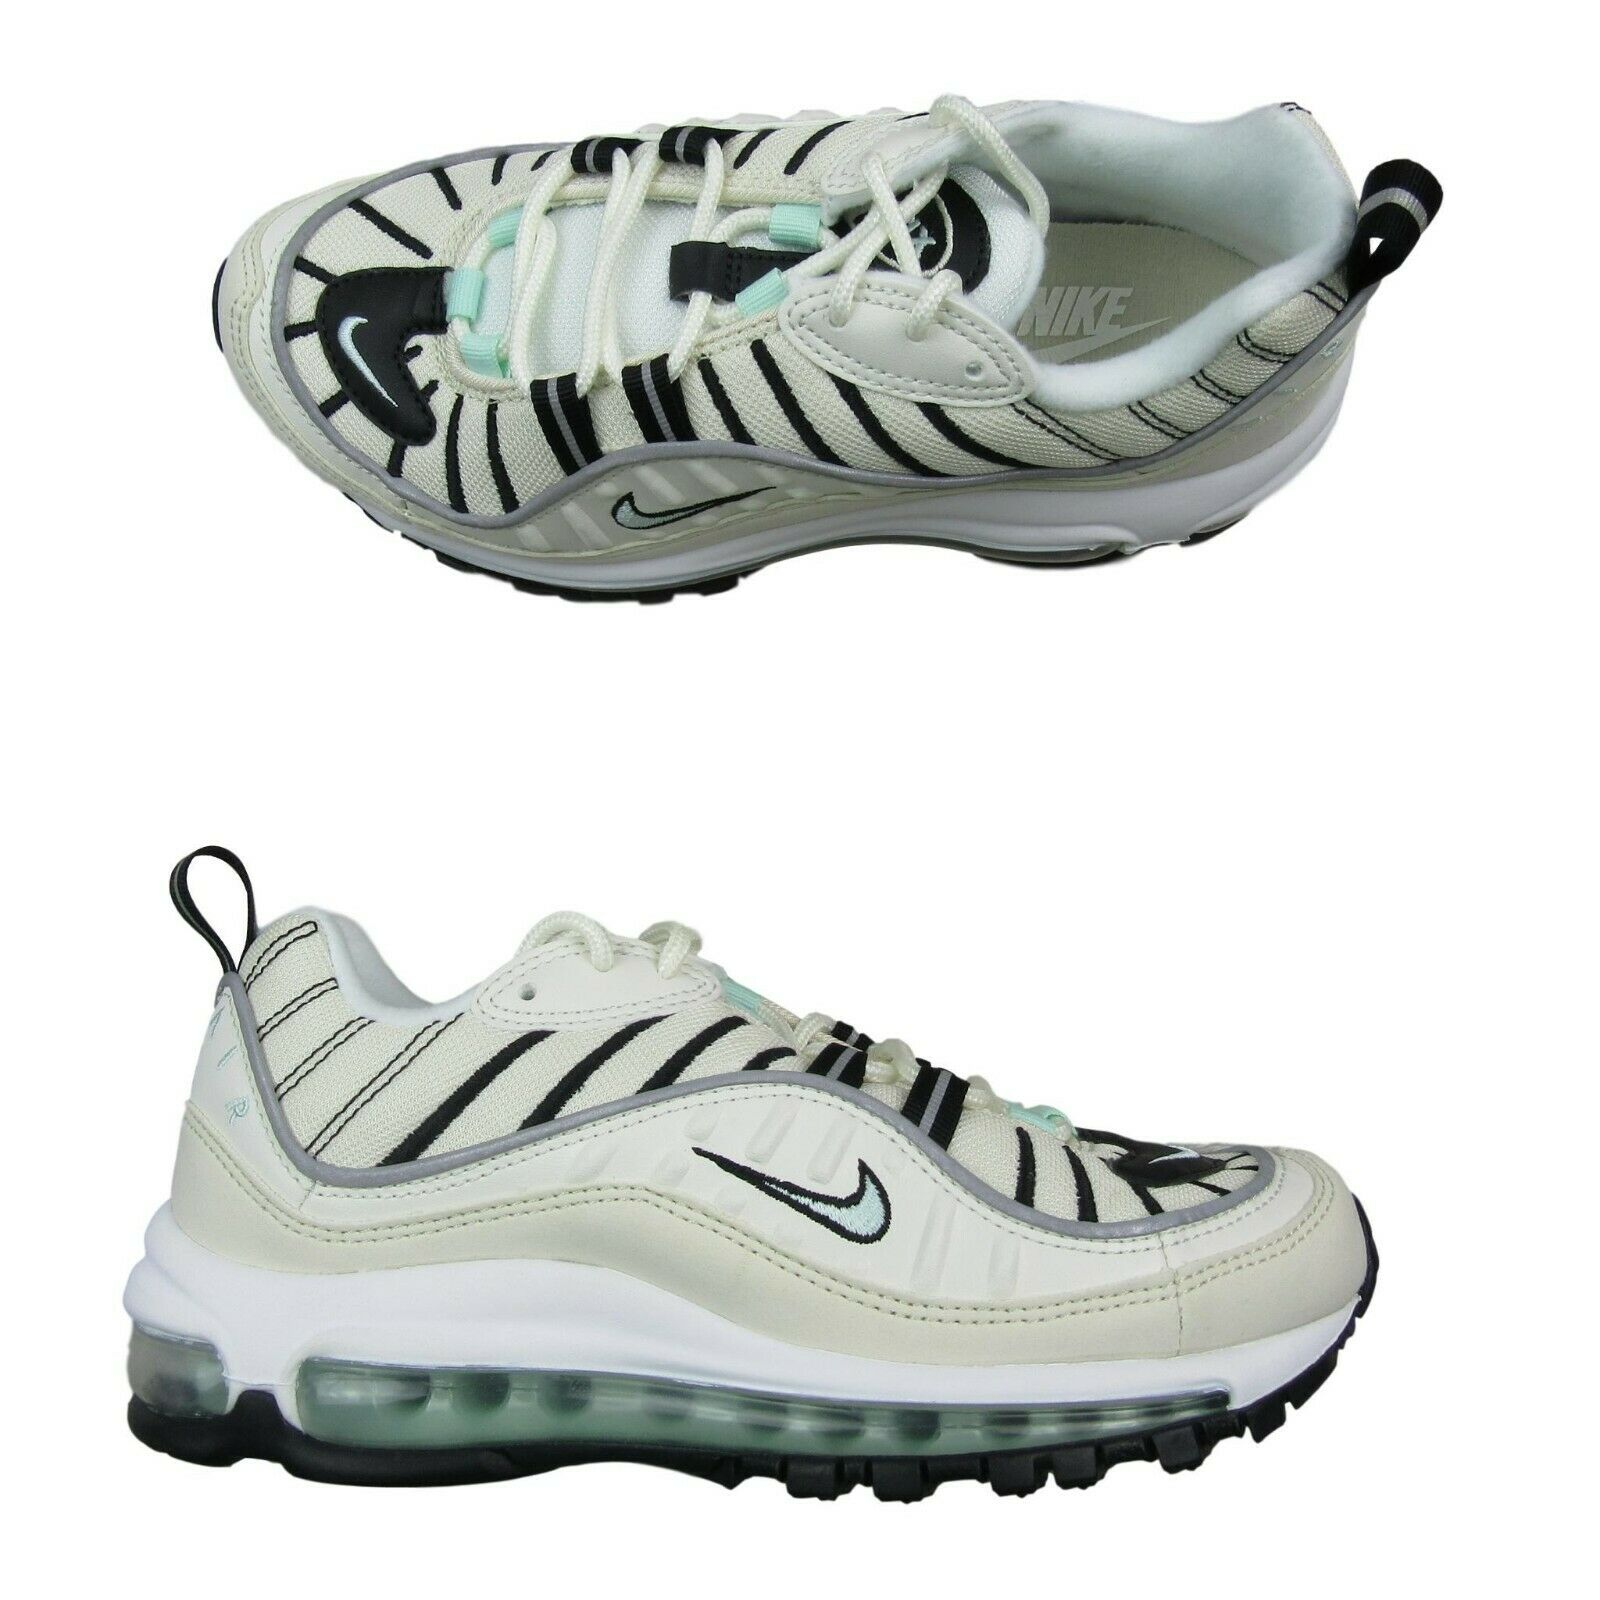 super popular 0d640 f6b07 Nike Air Max 98 Womens Running Shoes Size 7 Sail Tan Igloo Black New ...